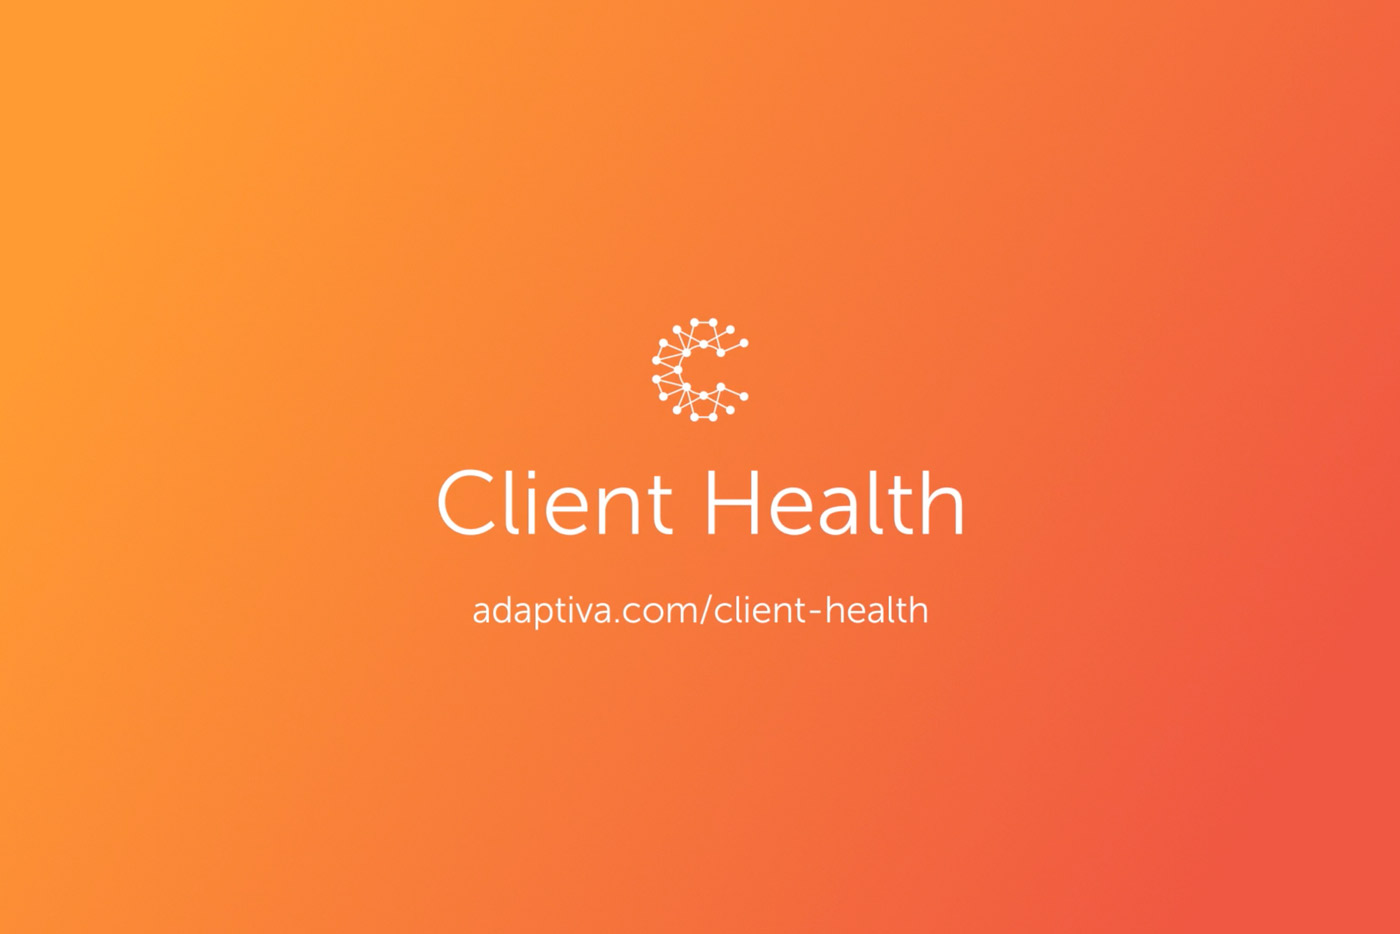 Client Health Product Video